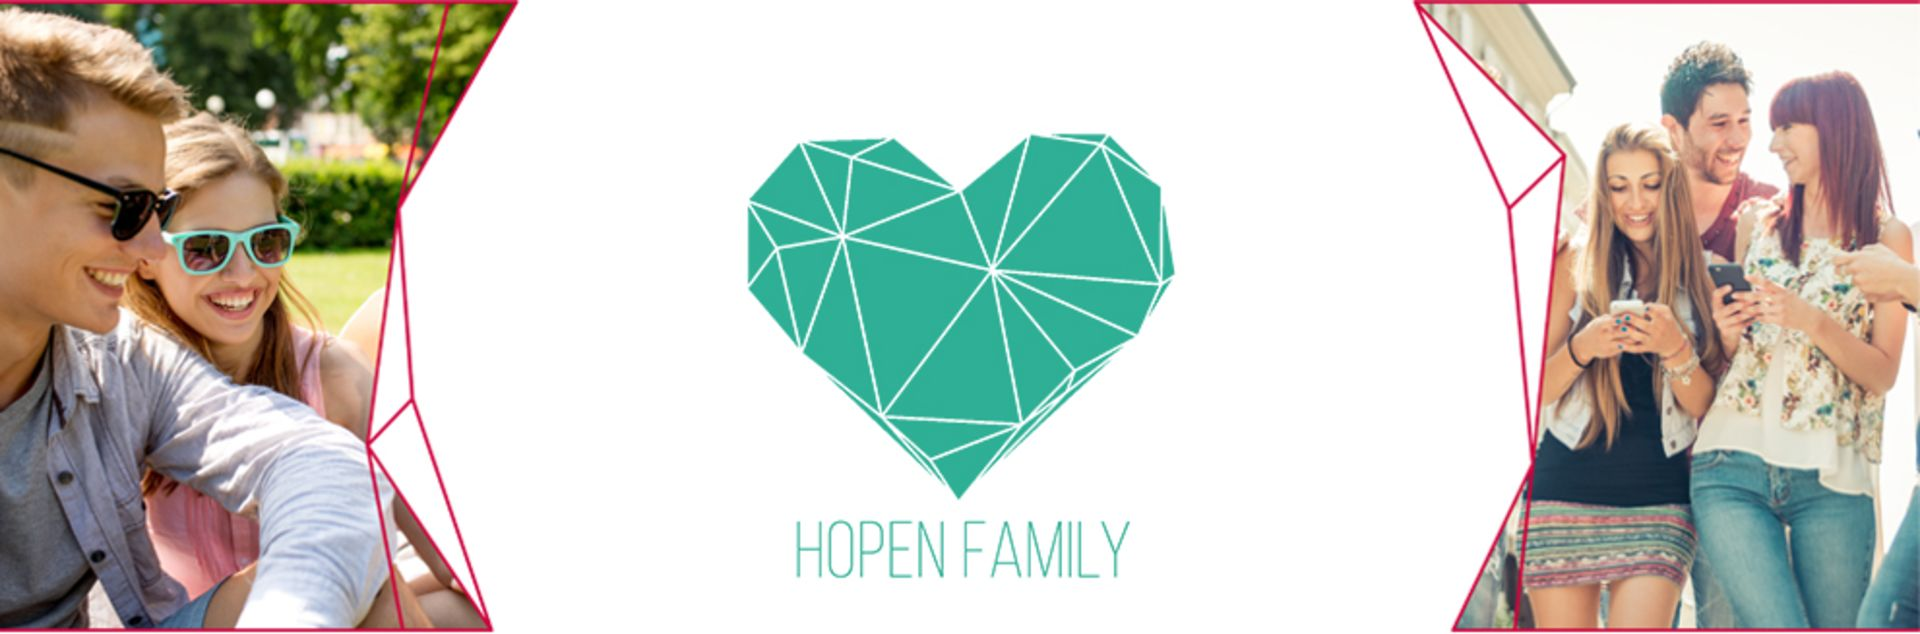 Hopenfamily solution mobile uquvj1